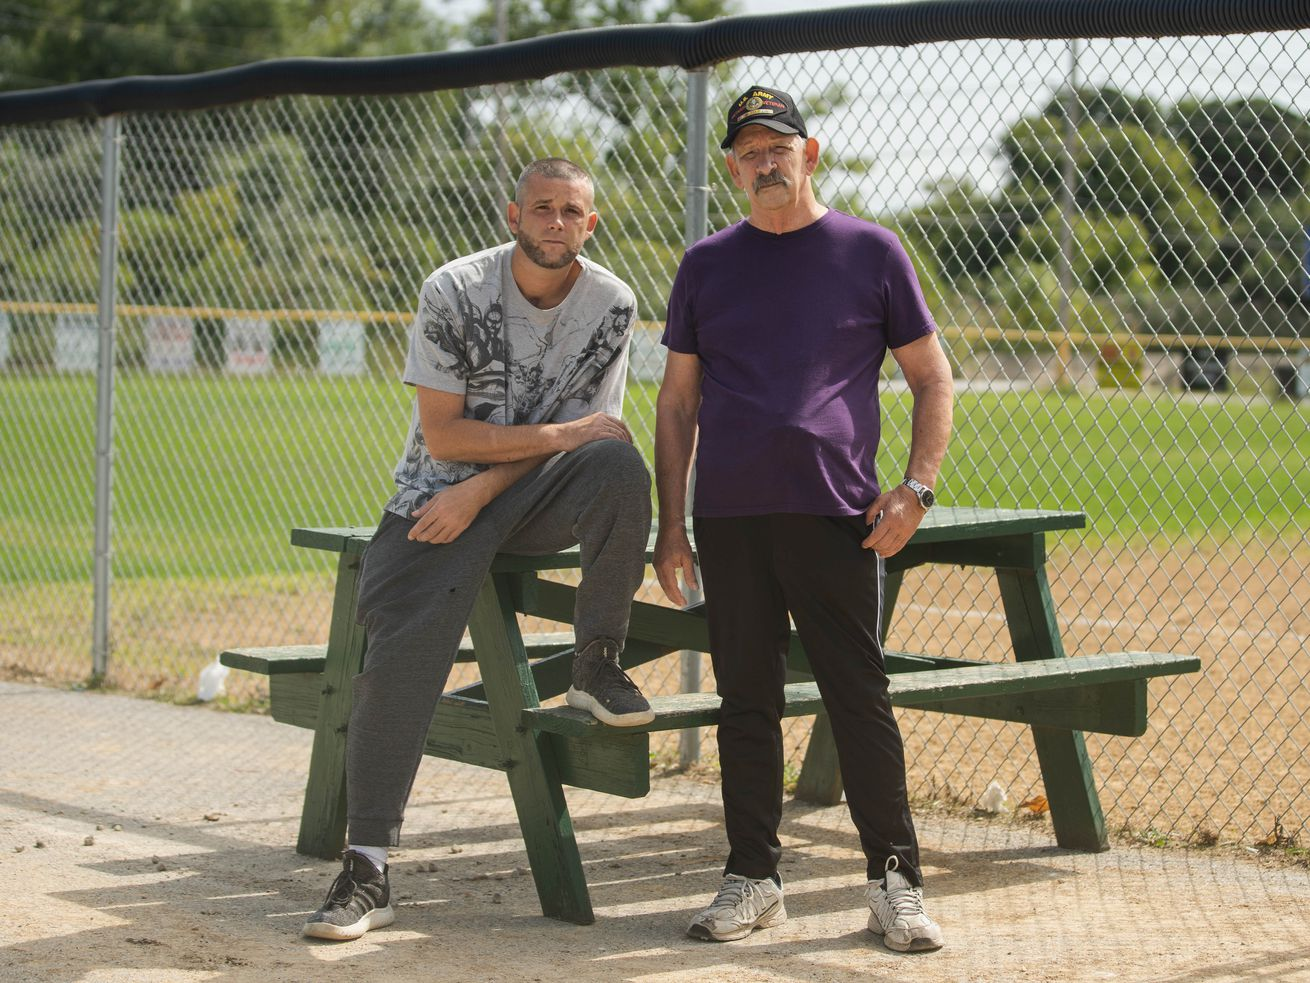 Bernard Ralich, right, and his son Daniel, live near the Hegewisch Babe Ruth youth baseball field, Bernard says a planned cleanup of manganese contamination is overdue.